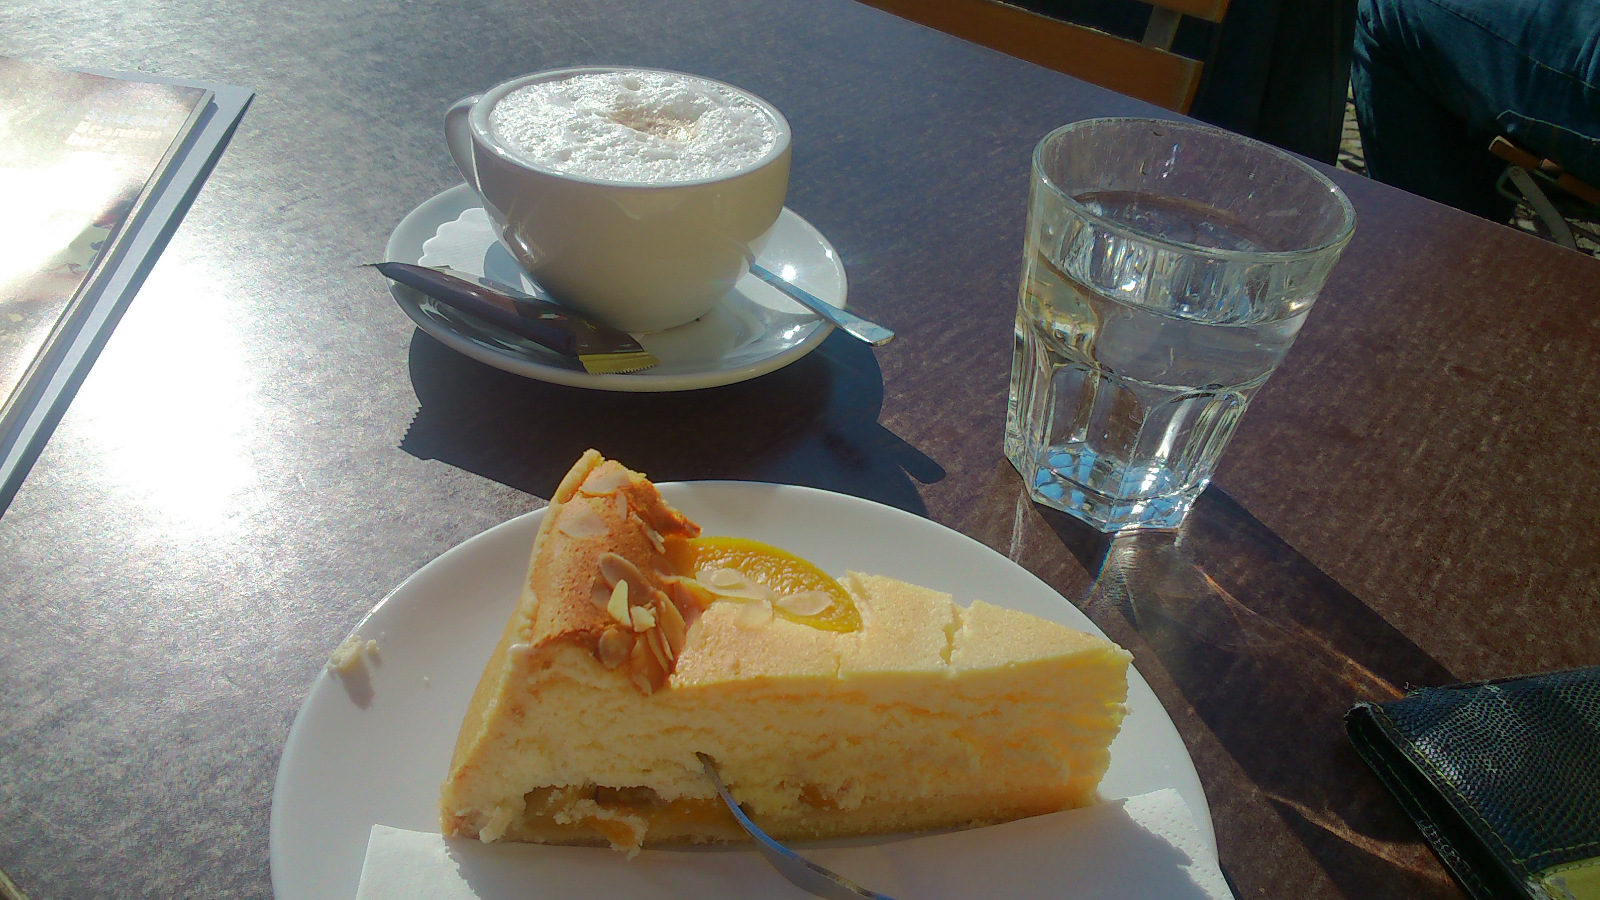 Kuchen Kaiser Berlin Cappuccino Marta S Adventures In The Big City